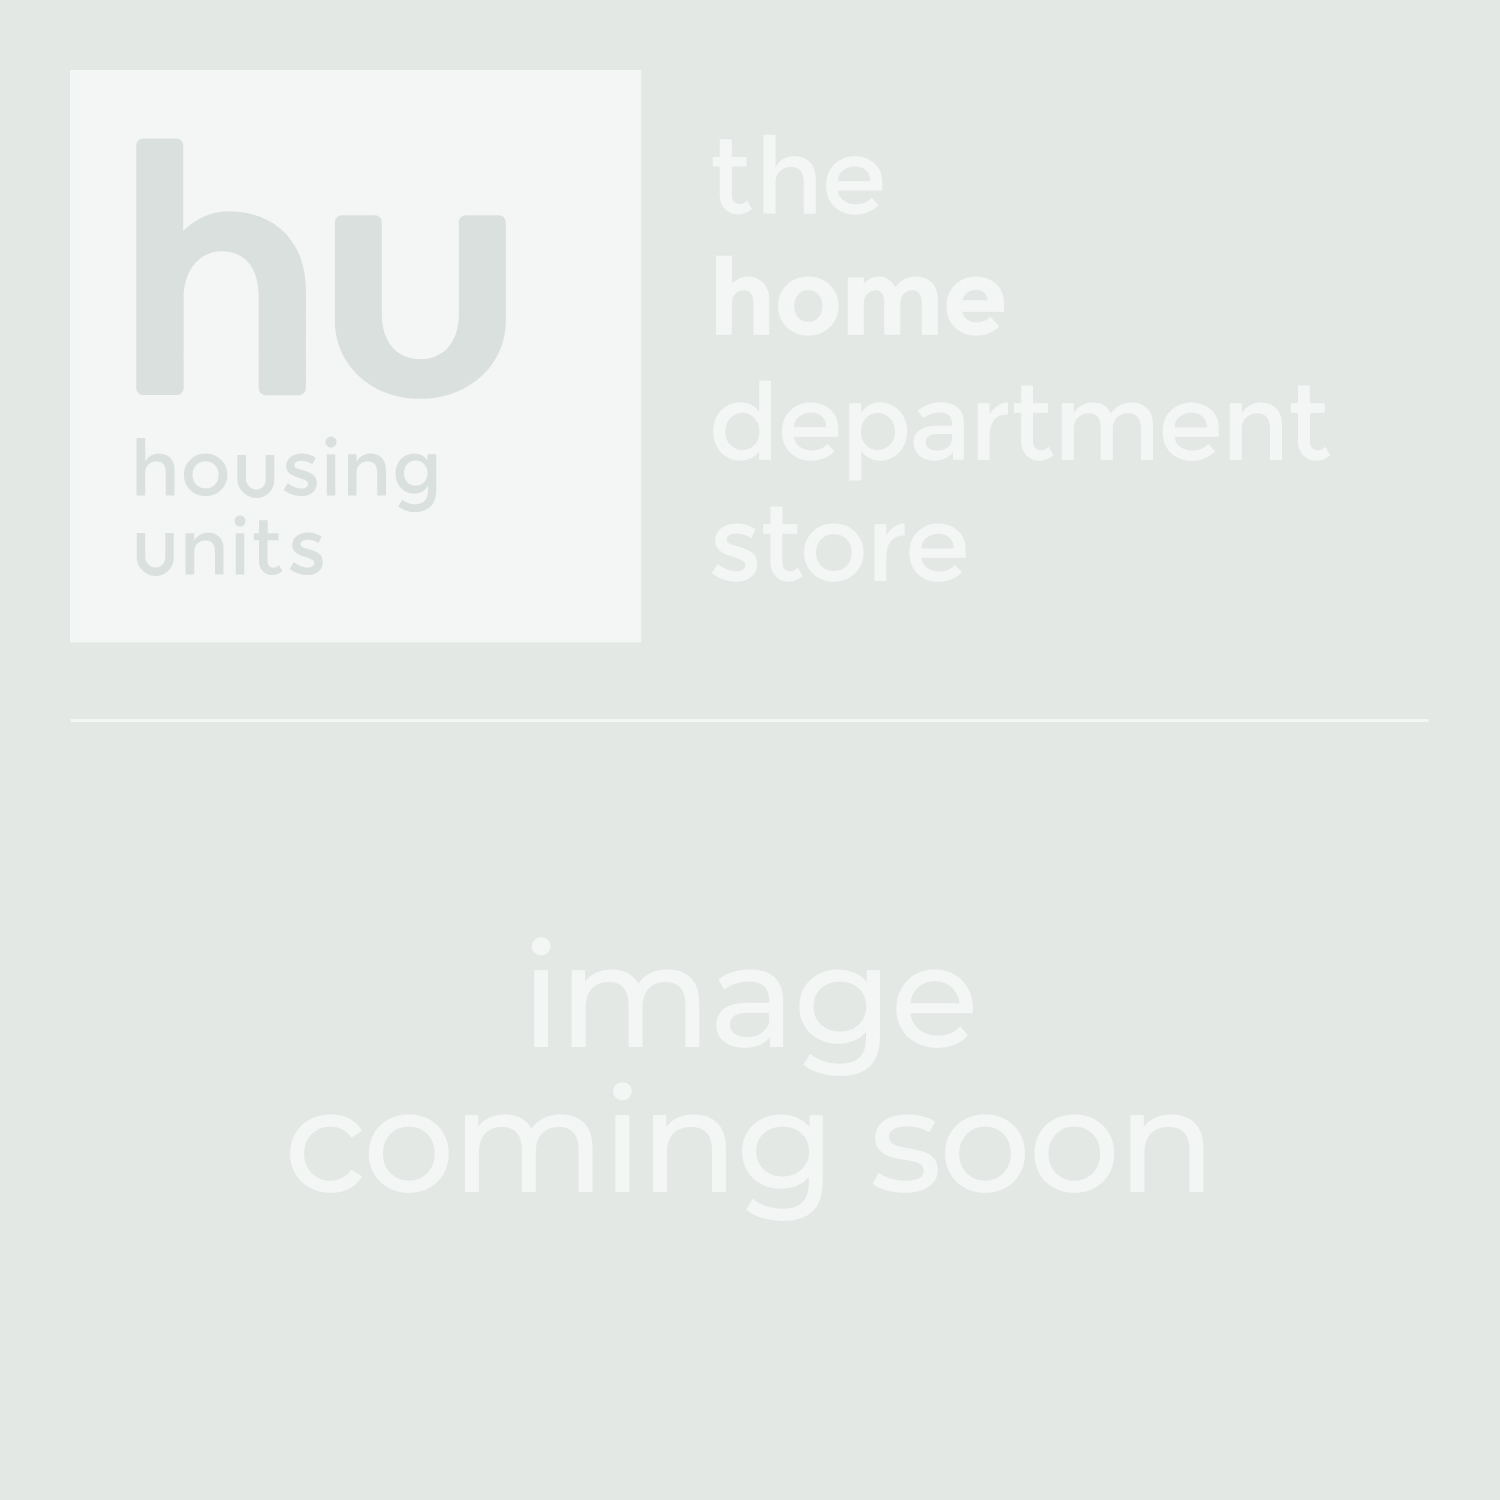 Celestial Round 160 x 160cm Ivory Teal Blue Rug | Housing Units